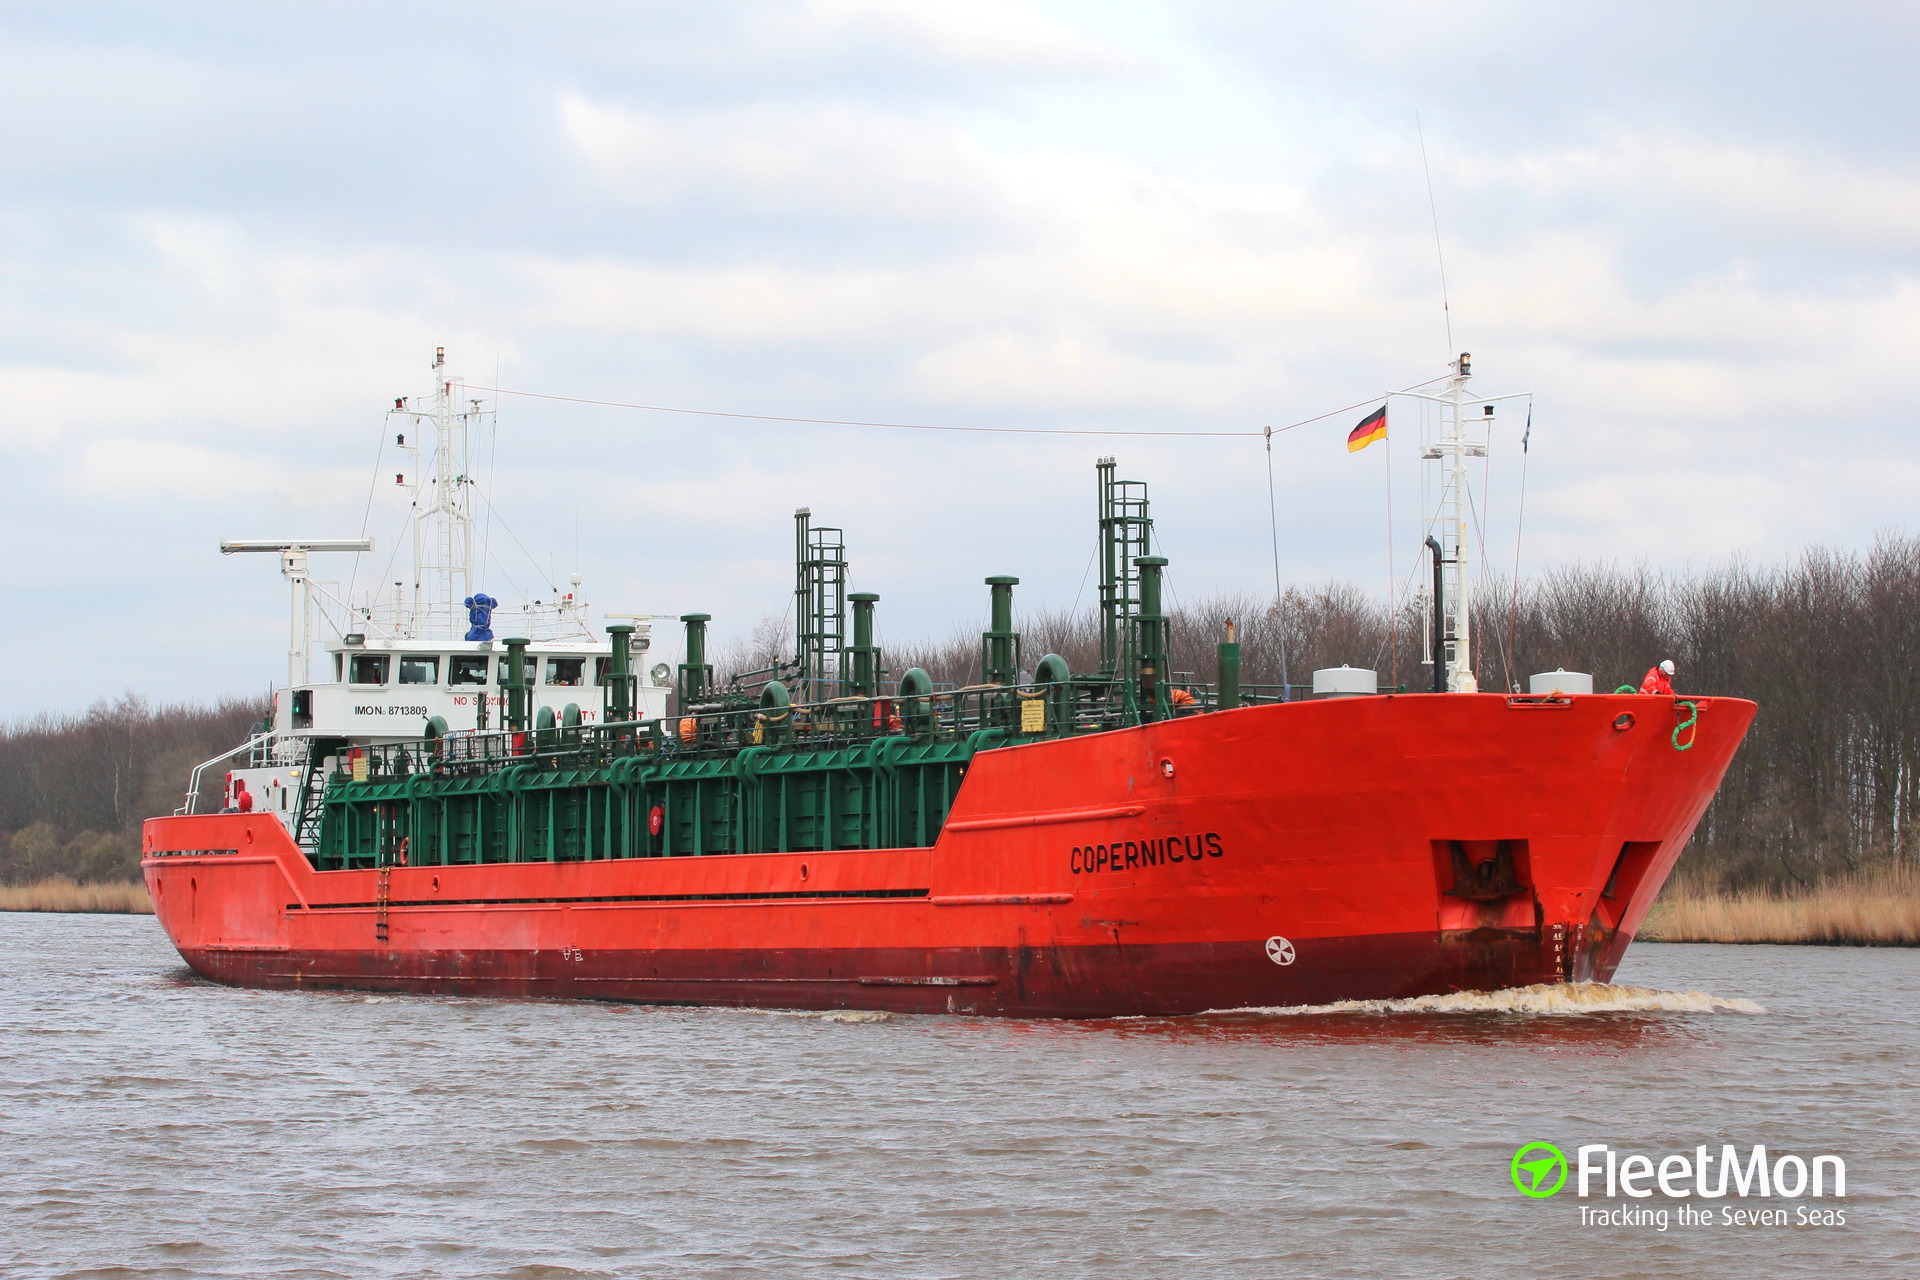 COPERNICUS disabled in English Canal